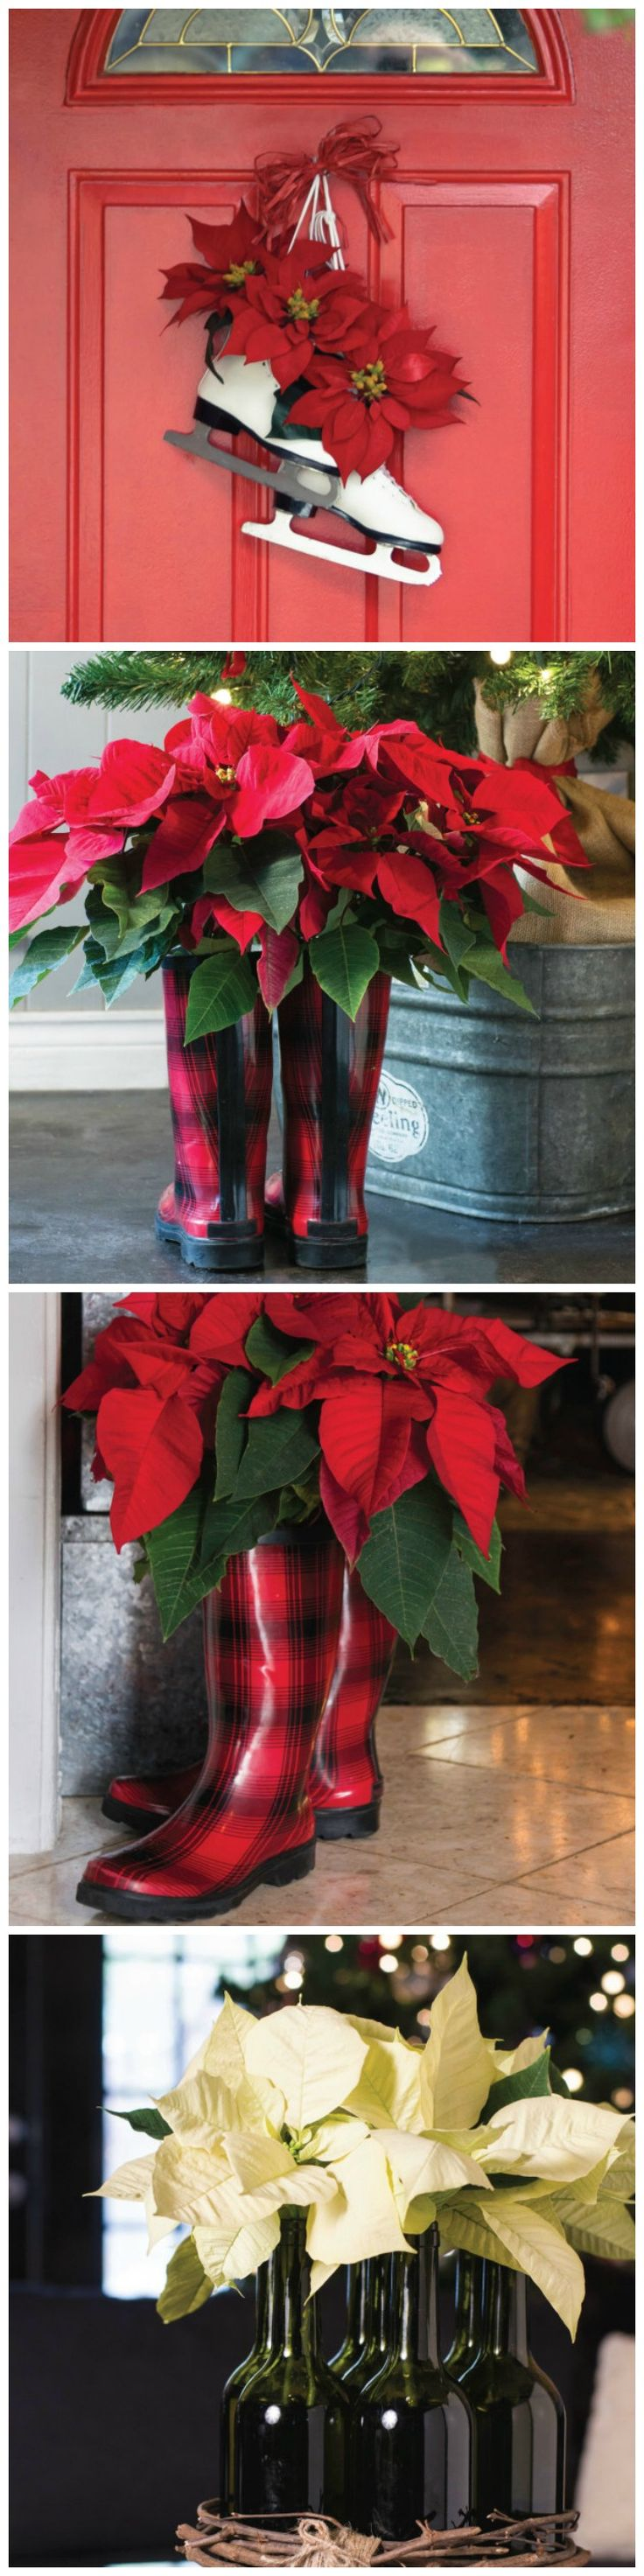 Decorate with Poinsettias In Surprising Spaces --> http://www.hgtvgardens.com/decorating/fun-poinsettia-holiday-arrangements?soc=pinterest